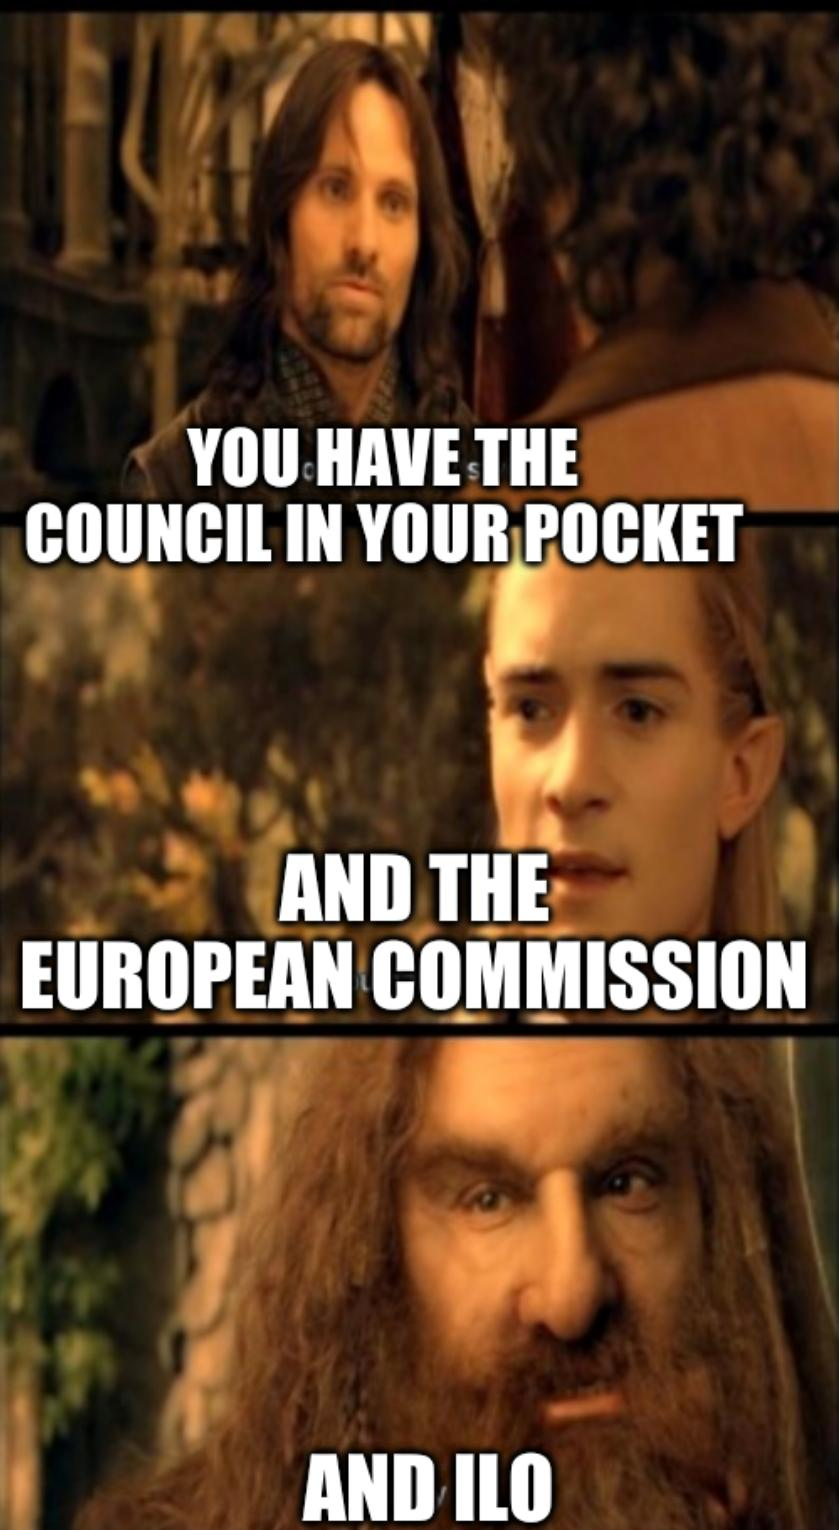 Lord of the rings council of elrond: You have the council in your pocket and the European Commission and ILO